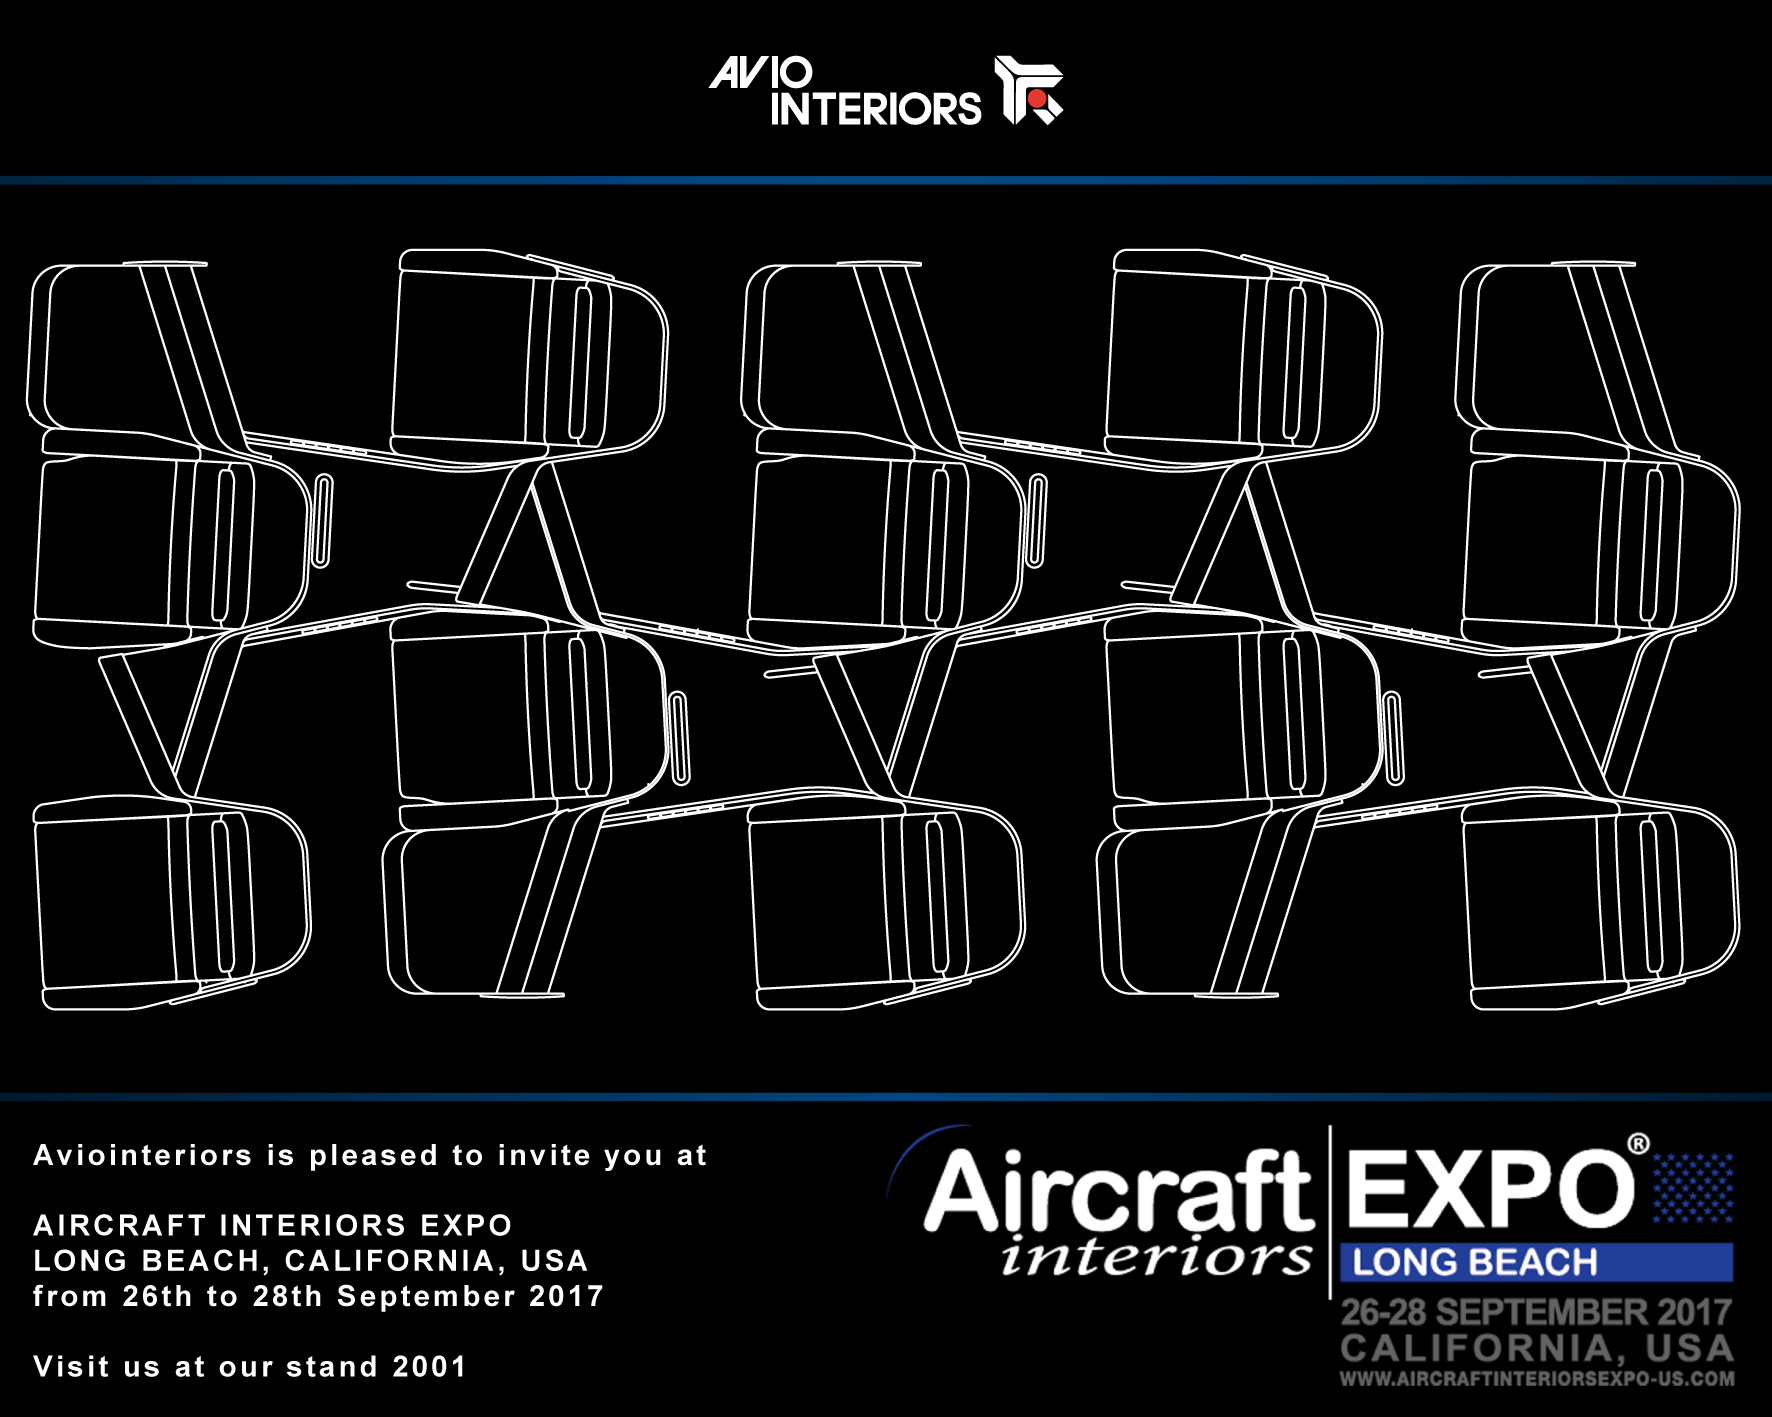 Visit us in Long Beach next September…stand 2001